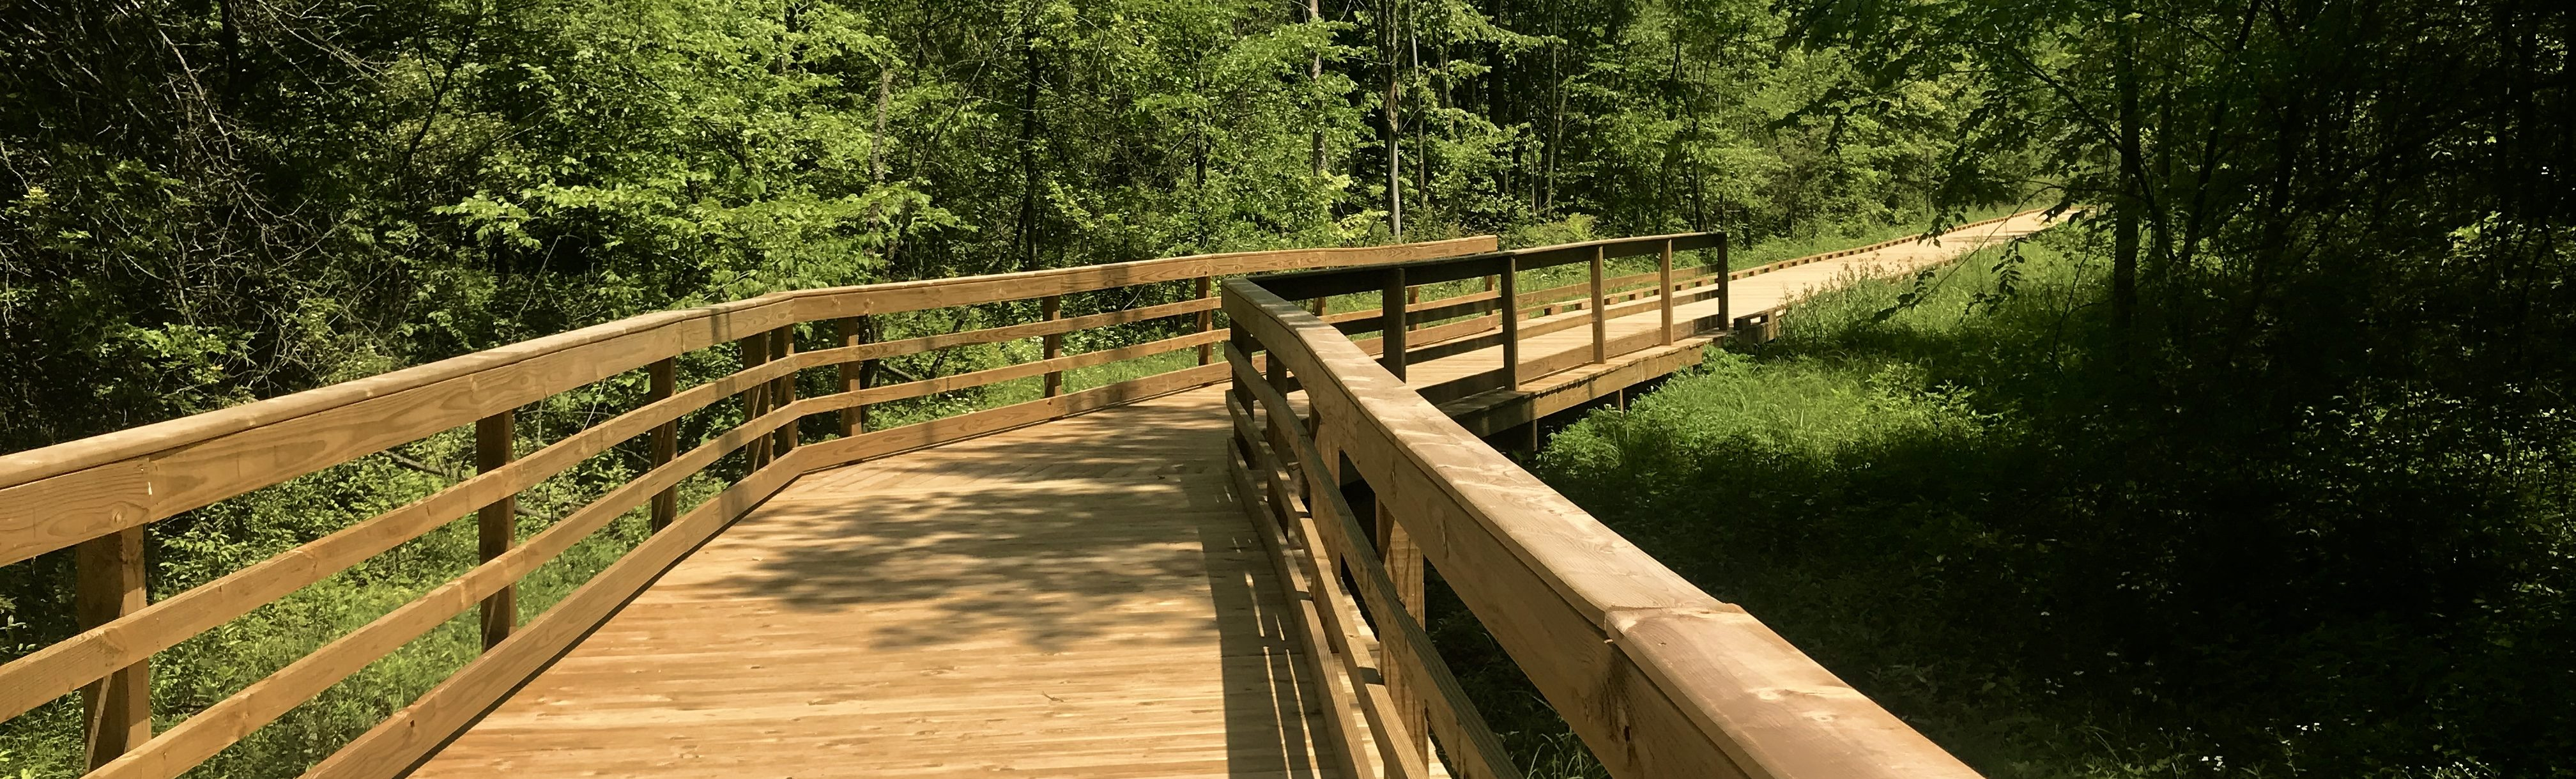 VISIT THE NEW NATURE TRAIL